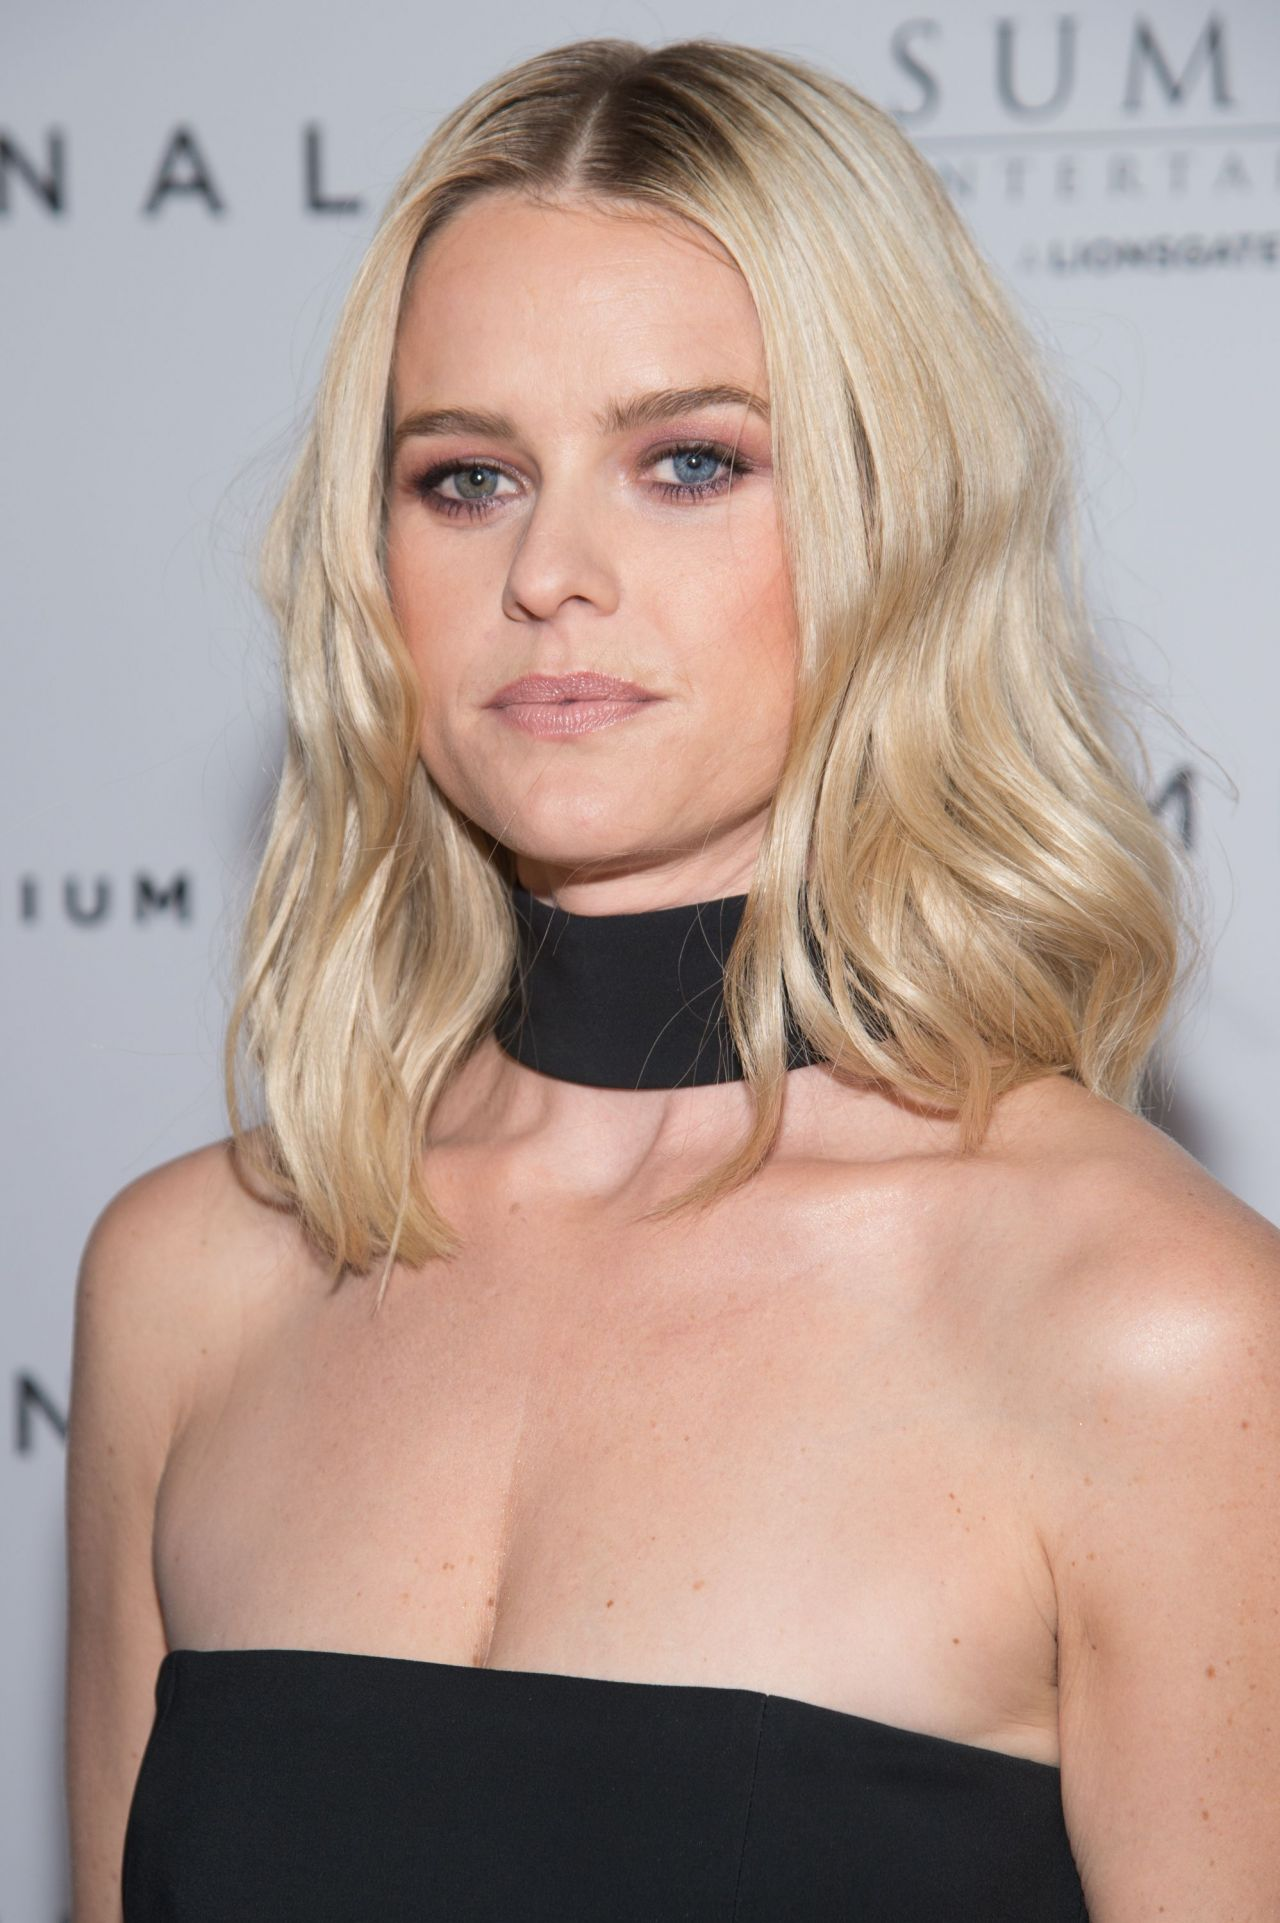 Alice Eve Criminal Premiere In New York City 4 11 2016